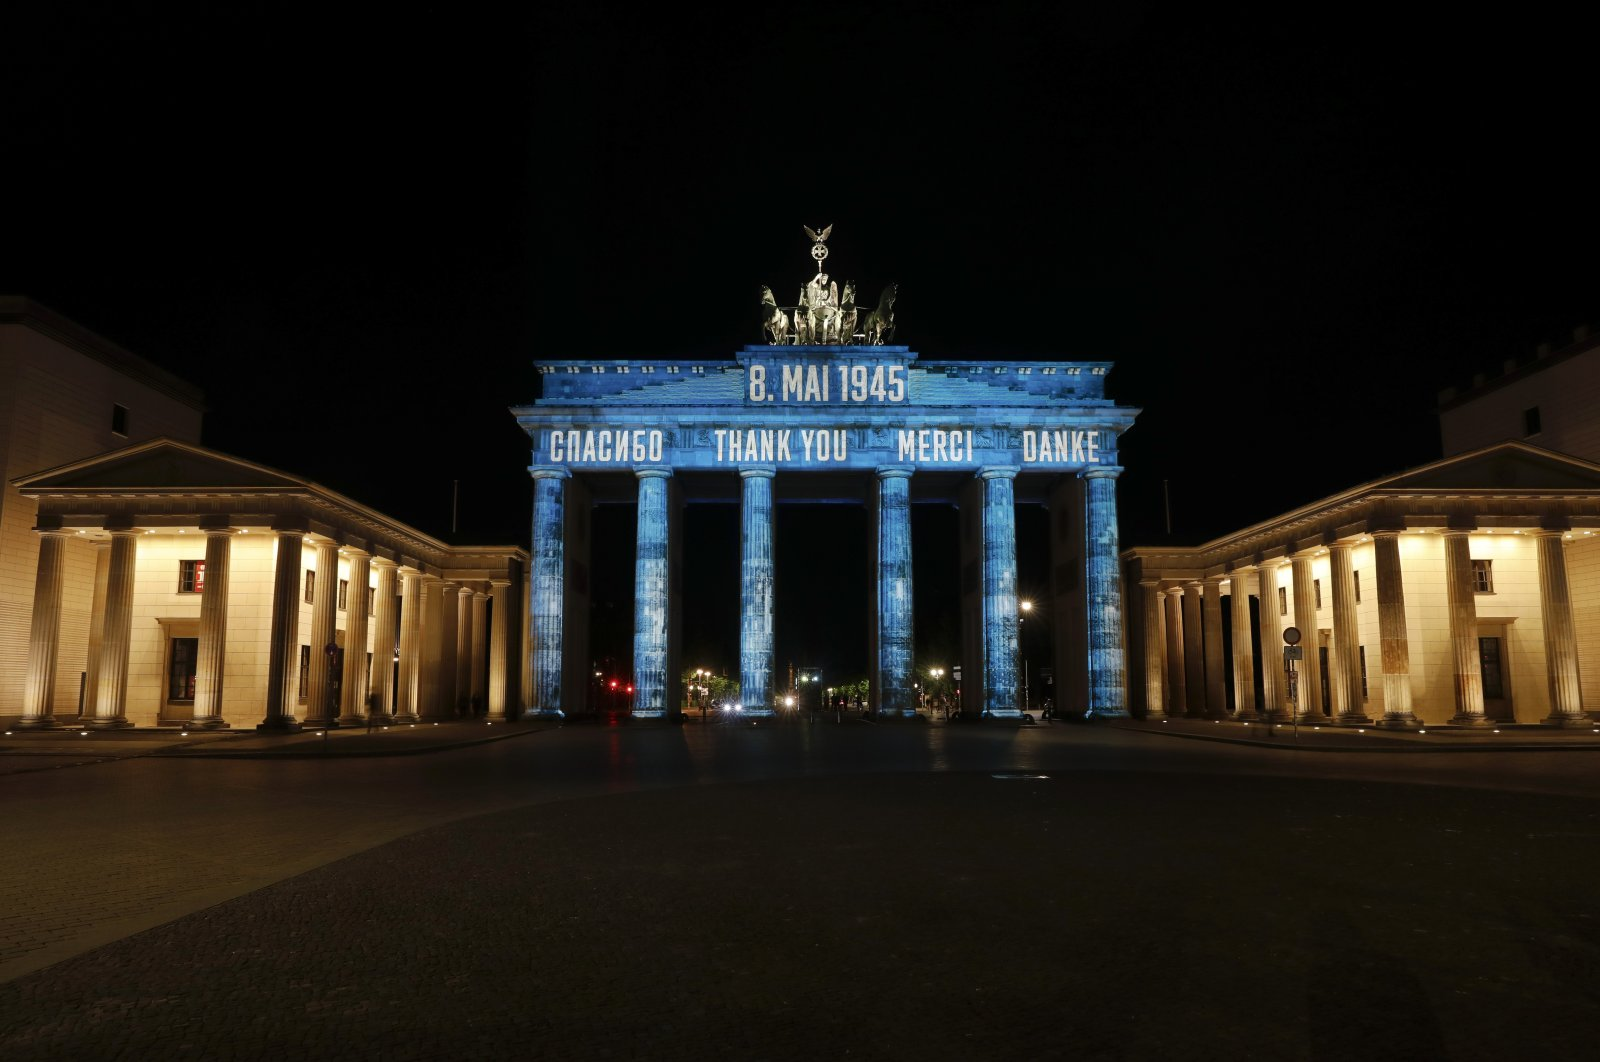 The German landmark Brandenburg Gate is illuminated to mark the 75th anniversary of Victory Day and the end of World War II in Europe, Berlin, Germany, May 8, 2020. (AP Photo)